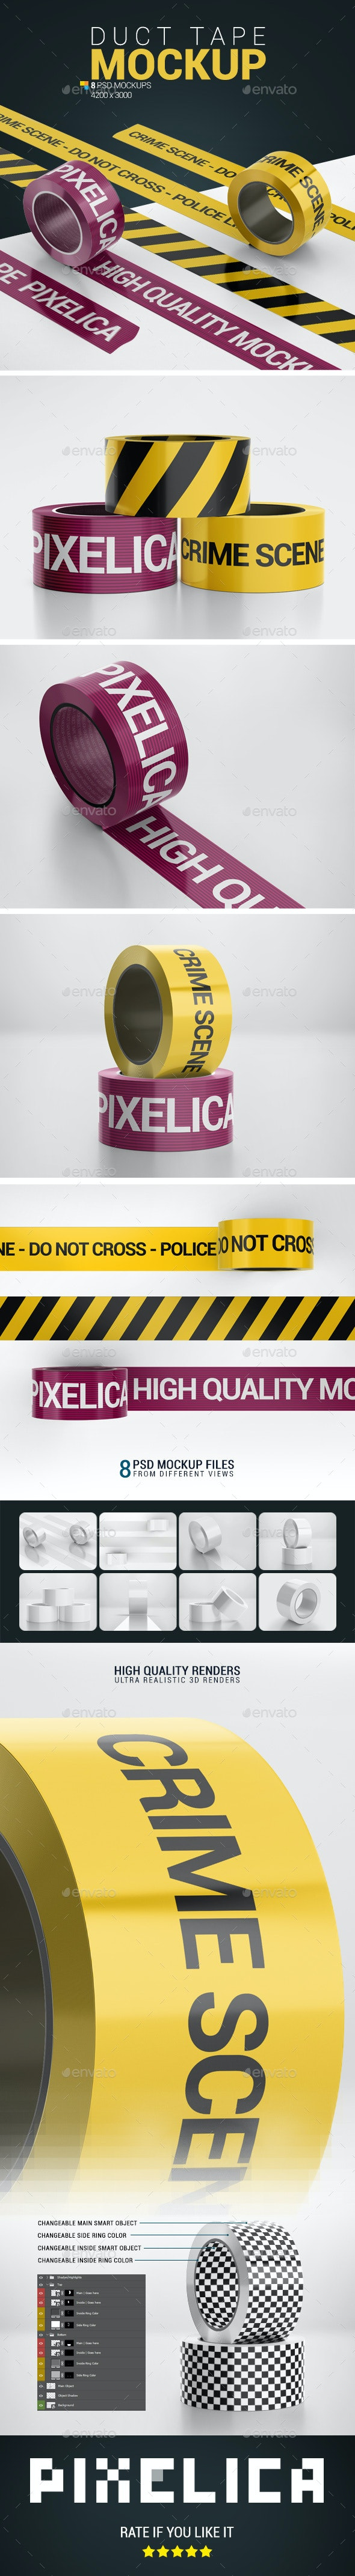 Duct Tape Mock-up - Product Mock-Ups Graphics